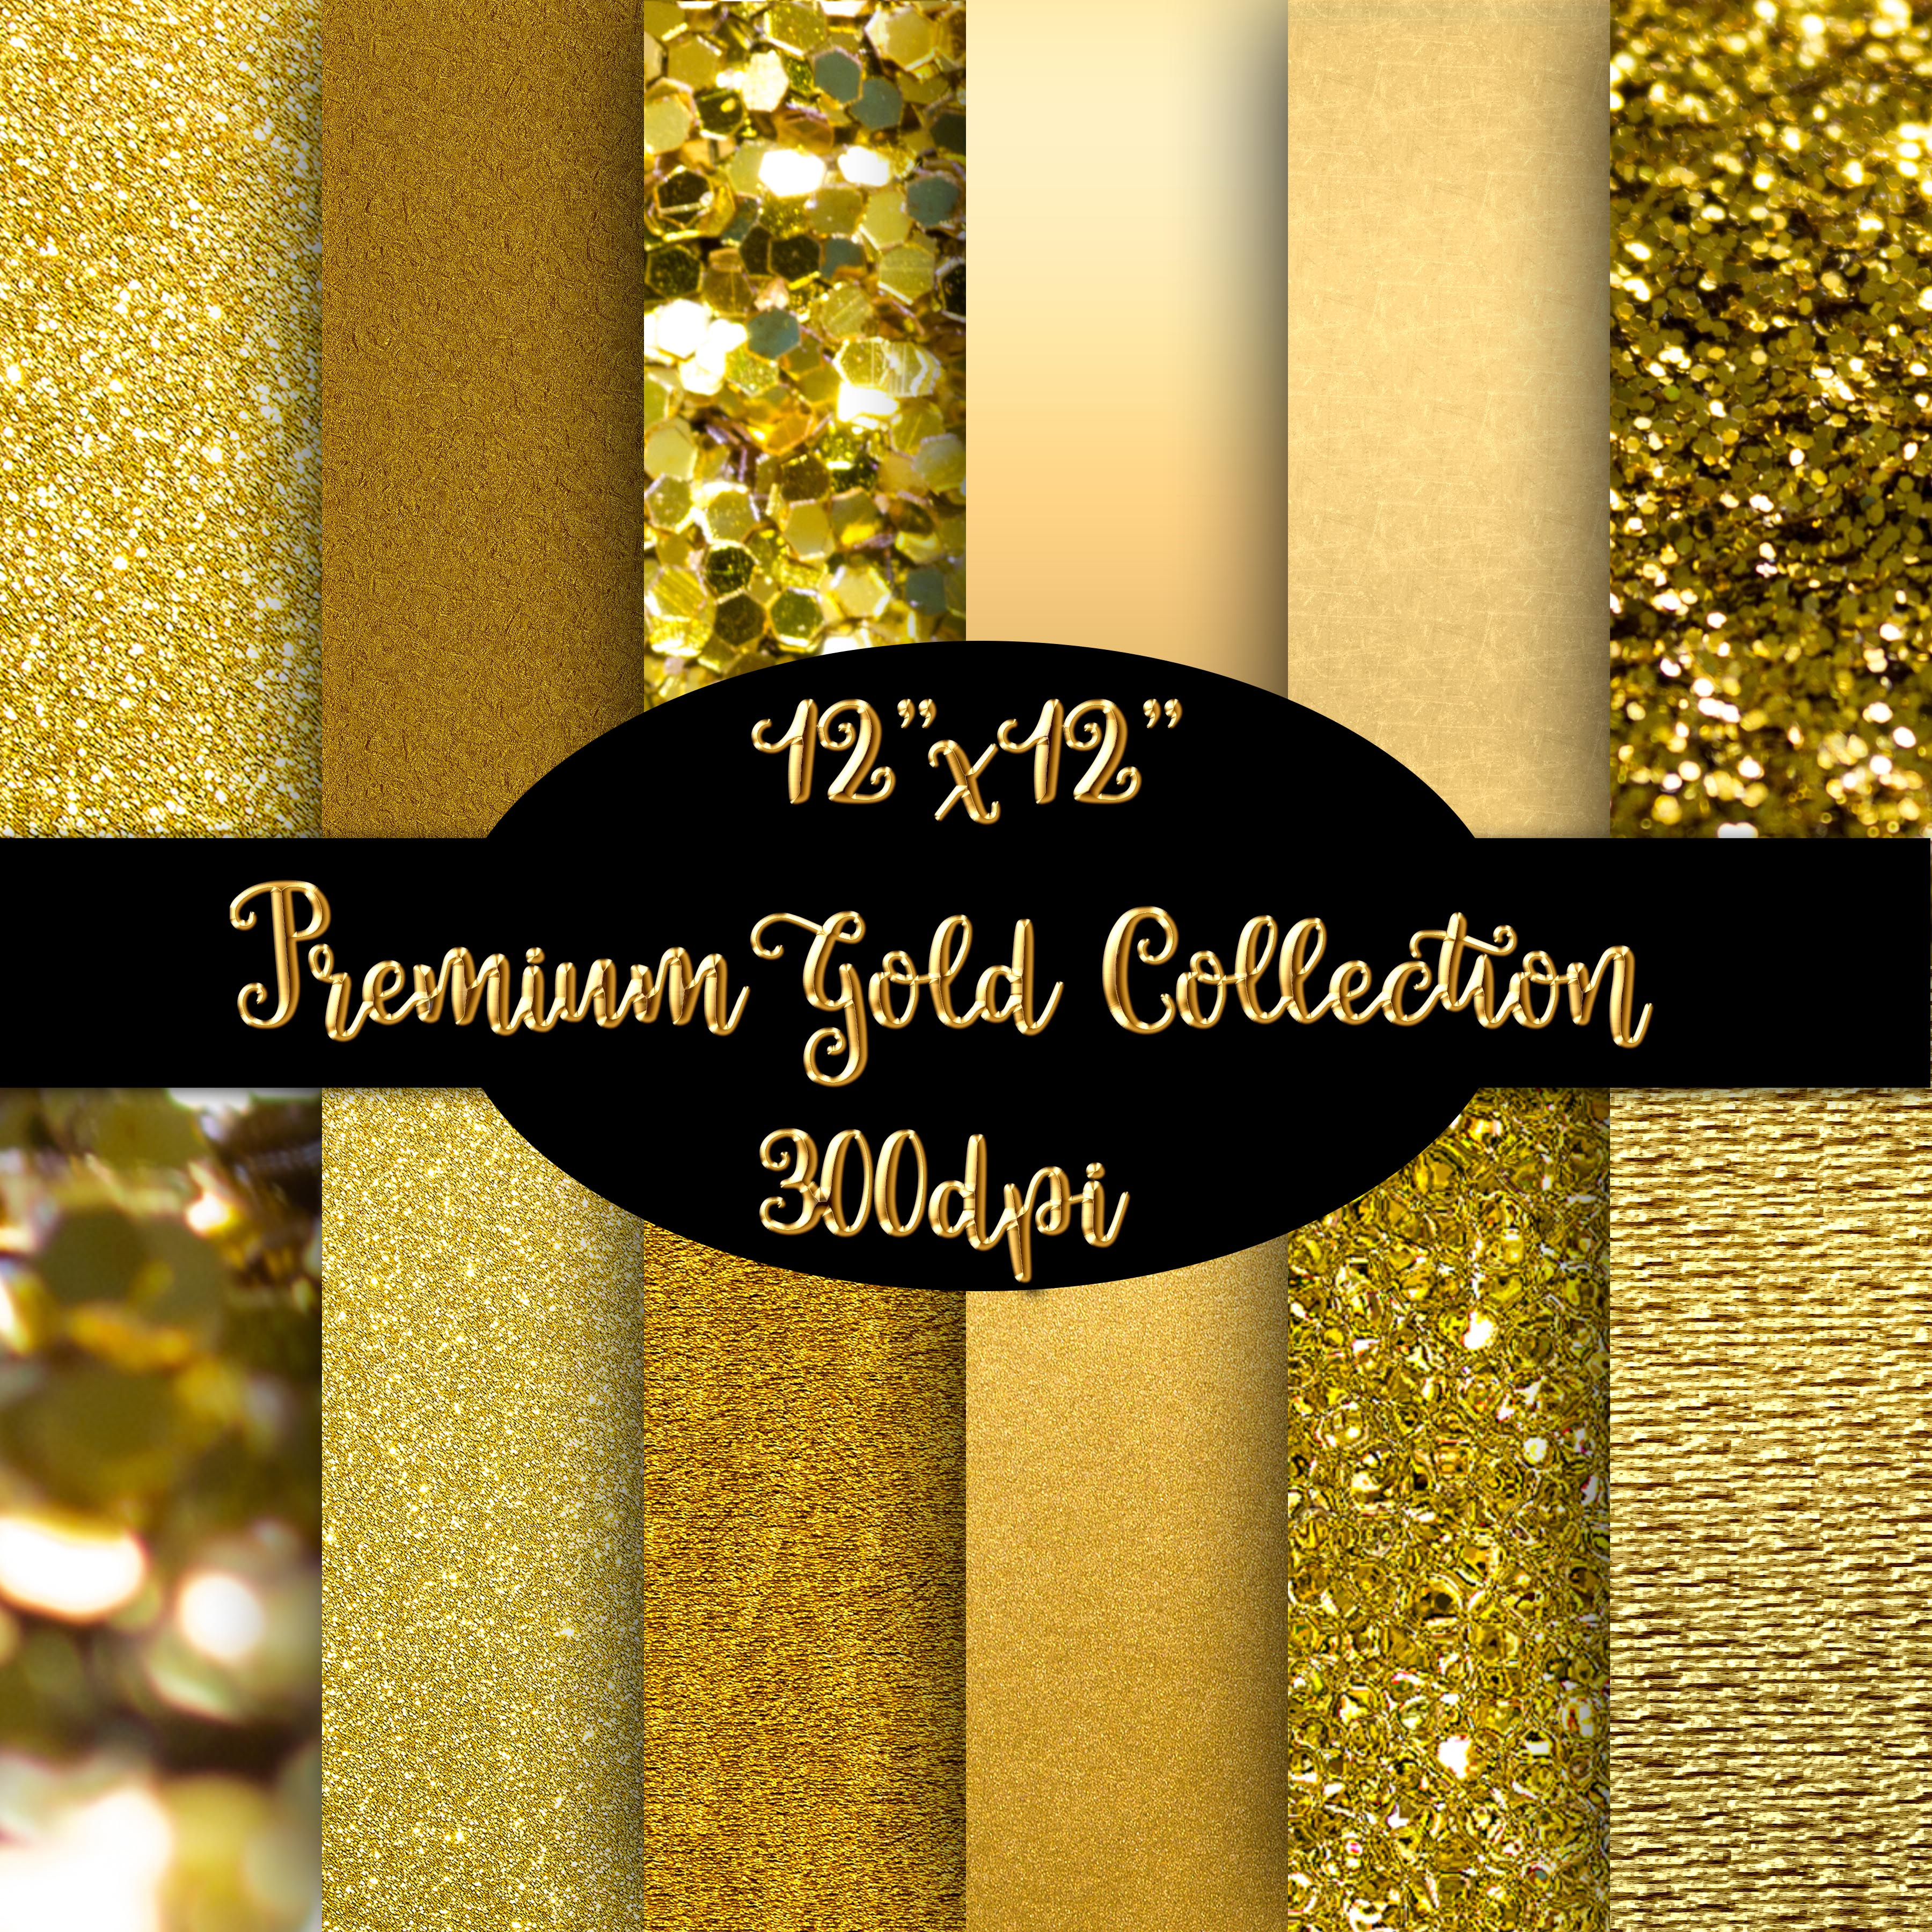 12 Premium Gold Textured Papers / Backgrounds example image 1